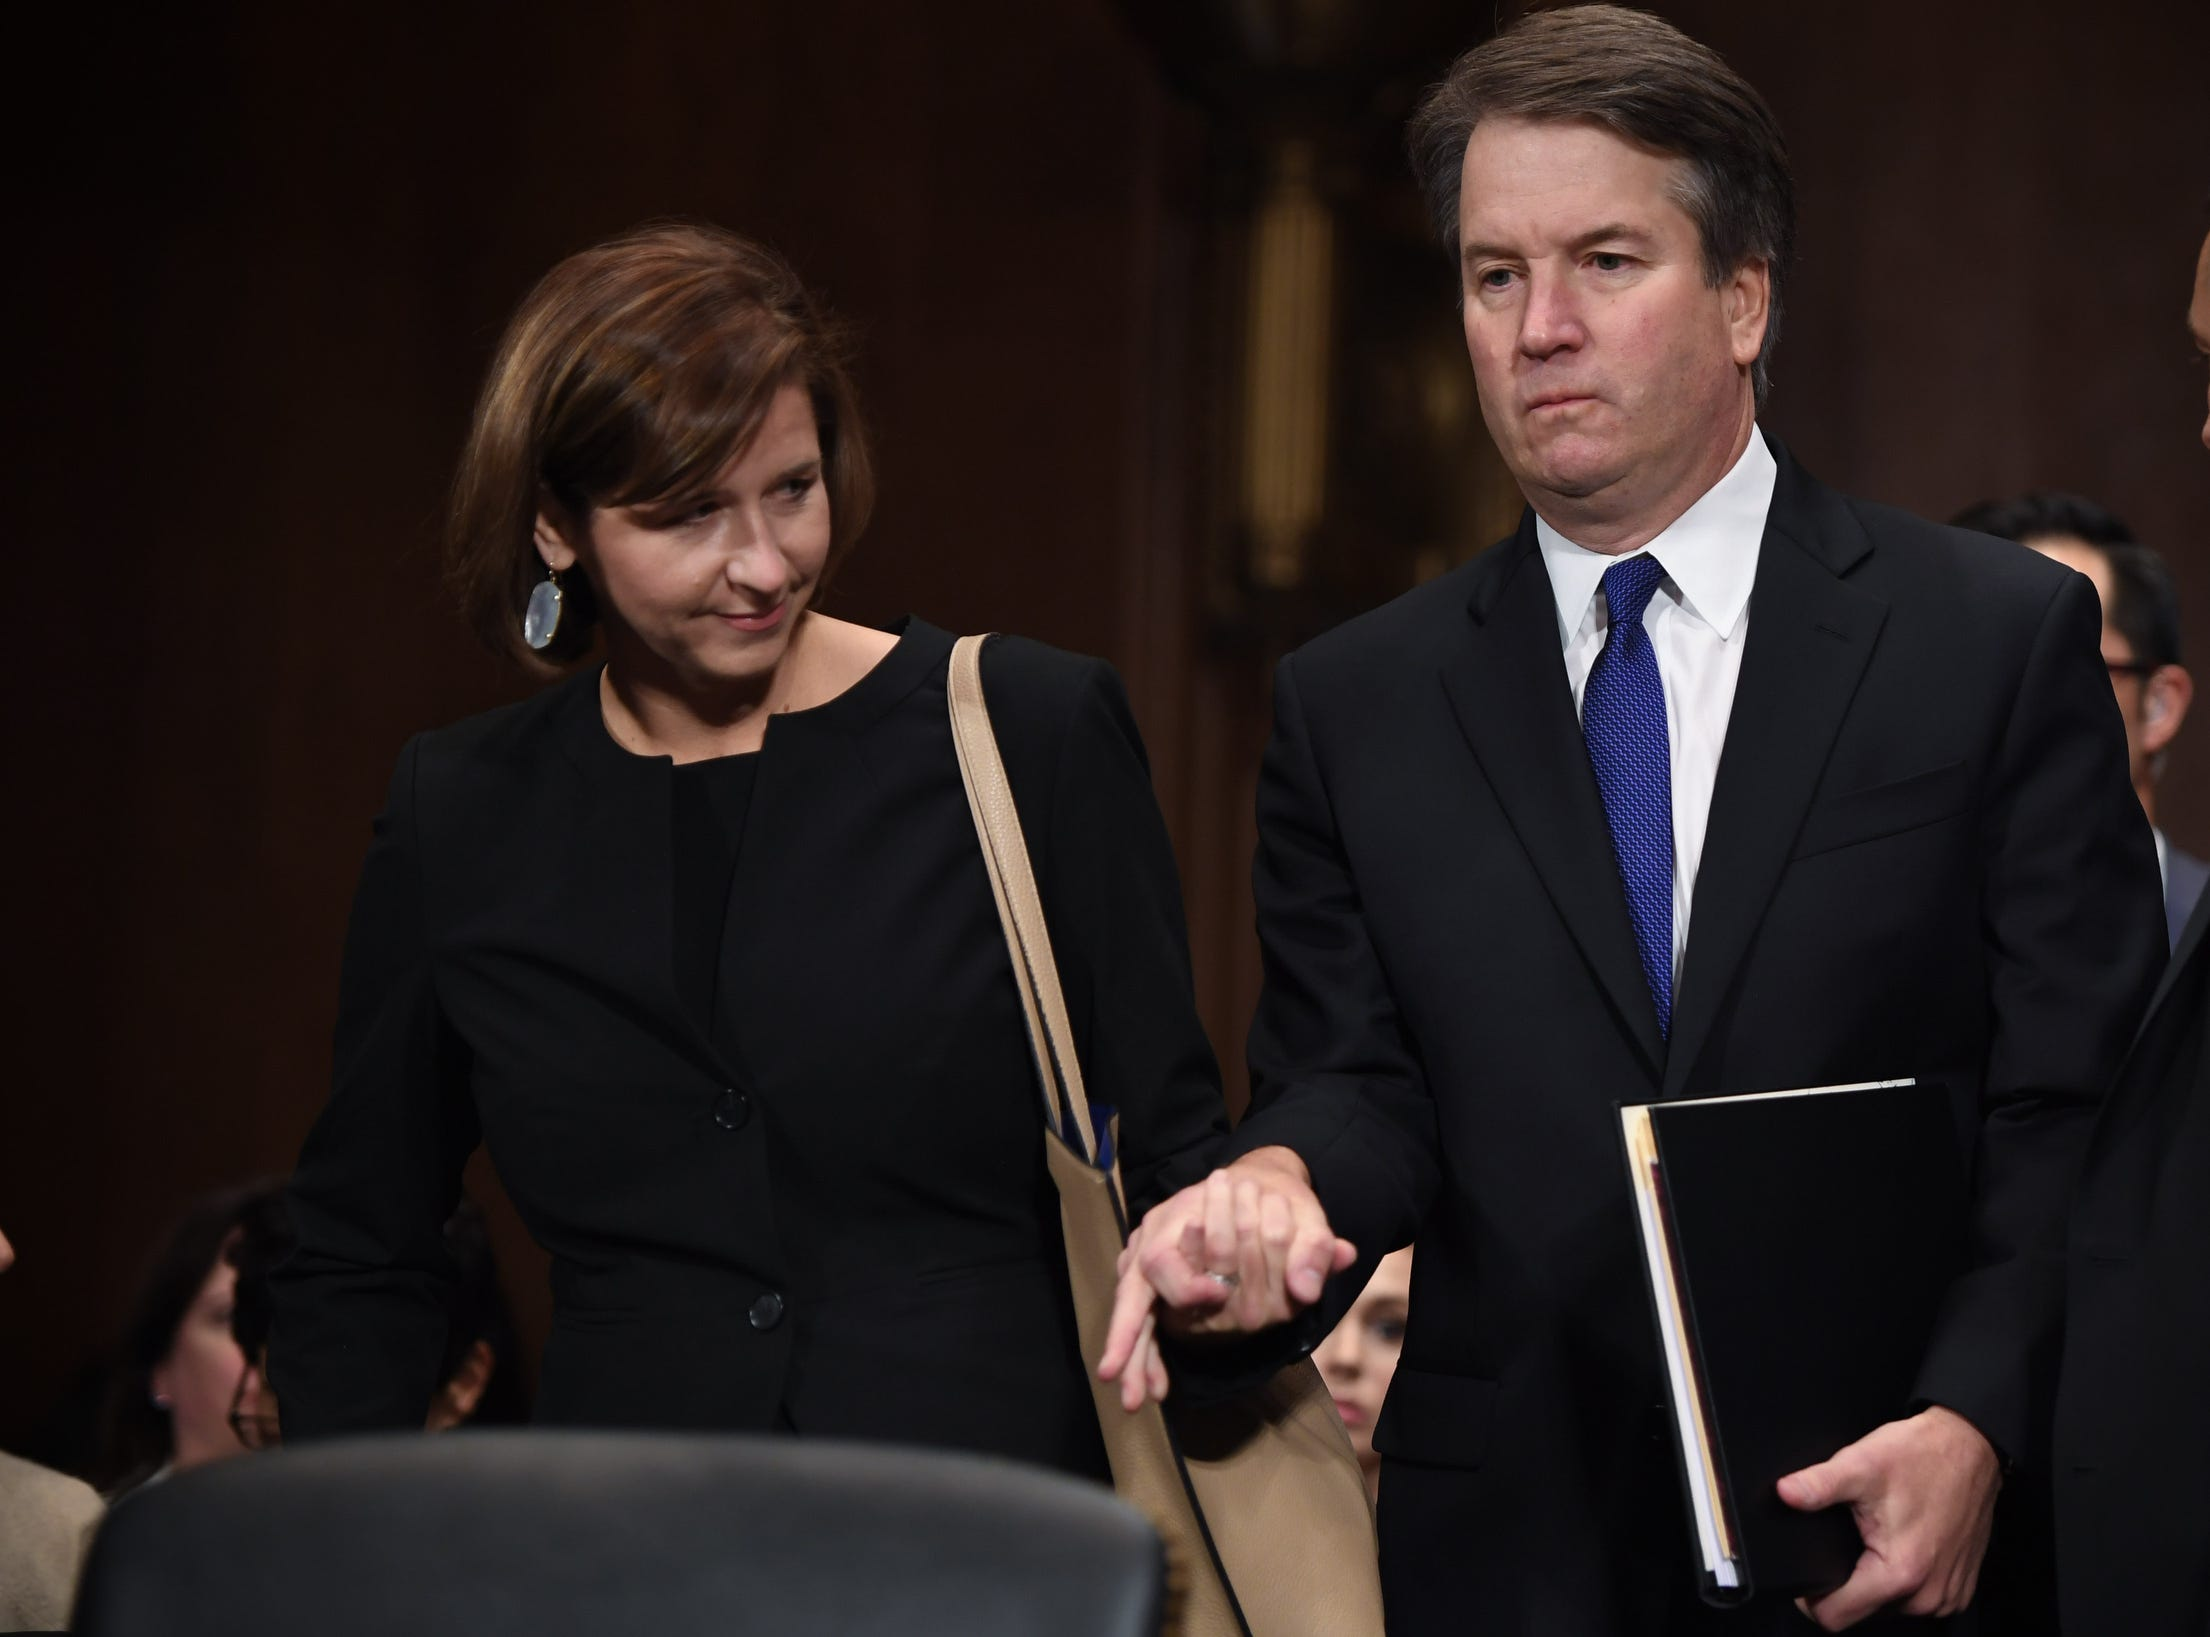 Supreme Court nominee Judge Brett Kavanaugh (R) arrives with his wife Ashley to testify, Thursday, before the US Senate Judiciary Committee in the Dirksen Senate Office Building, in Washington, DC.